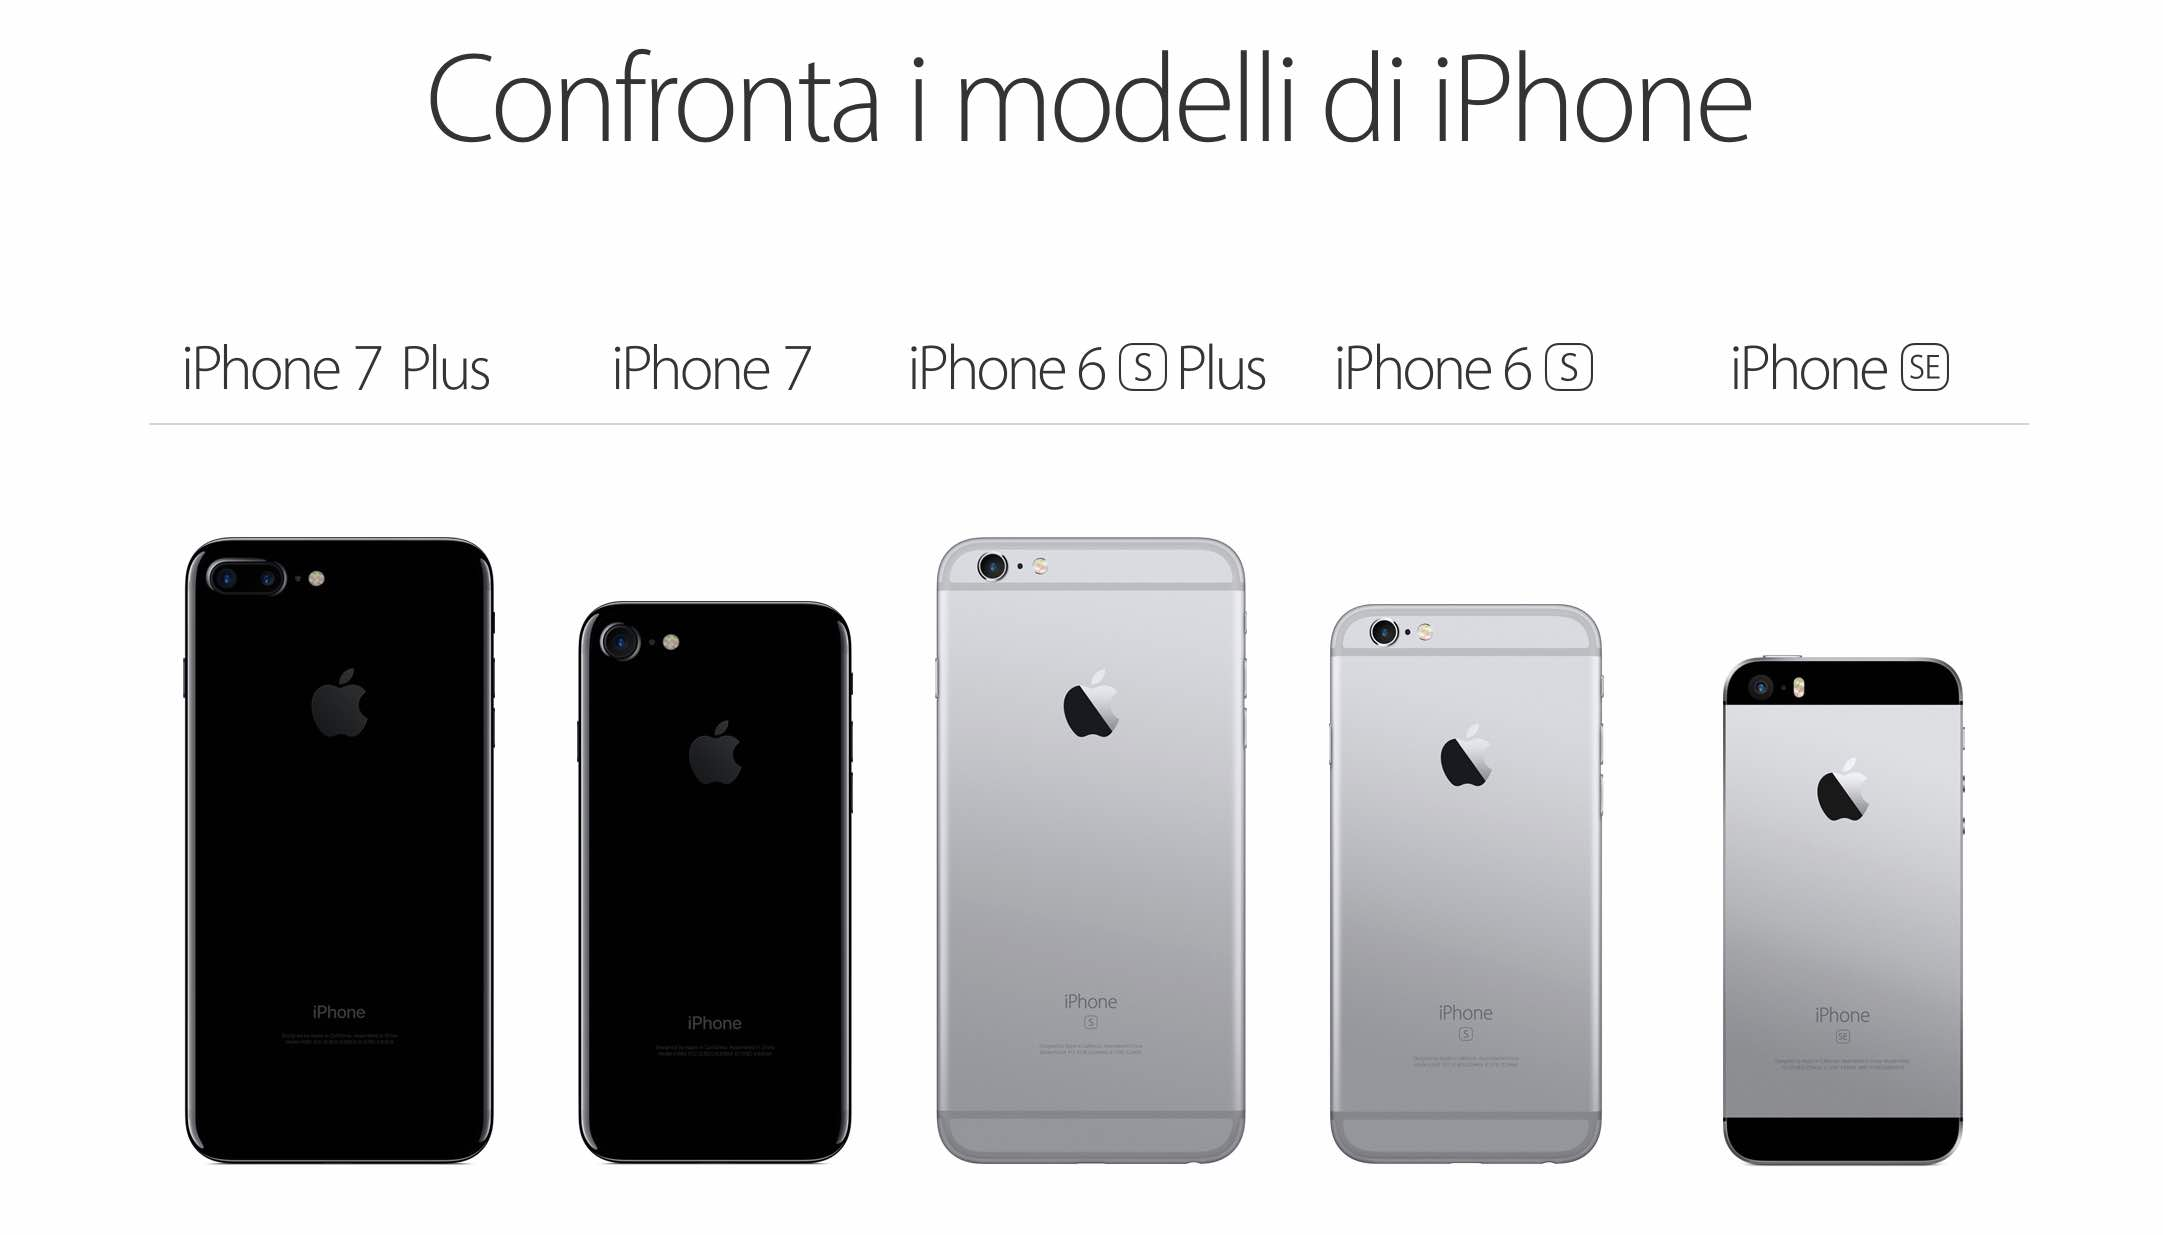 Iphone Misure La Lineup Degli Iphone A Confronto Iphone Italia